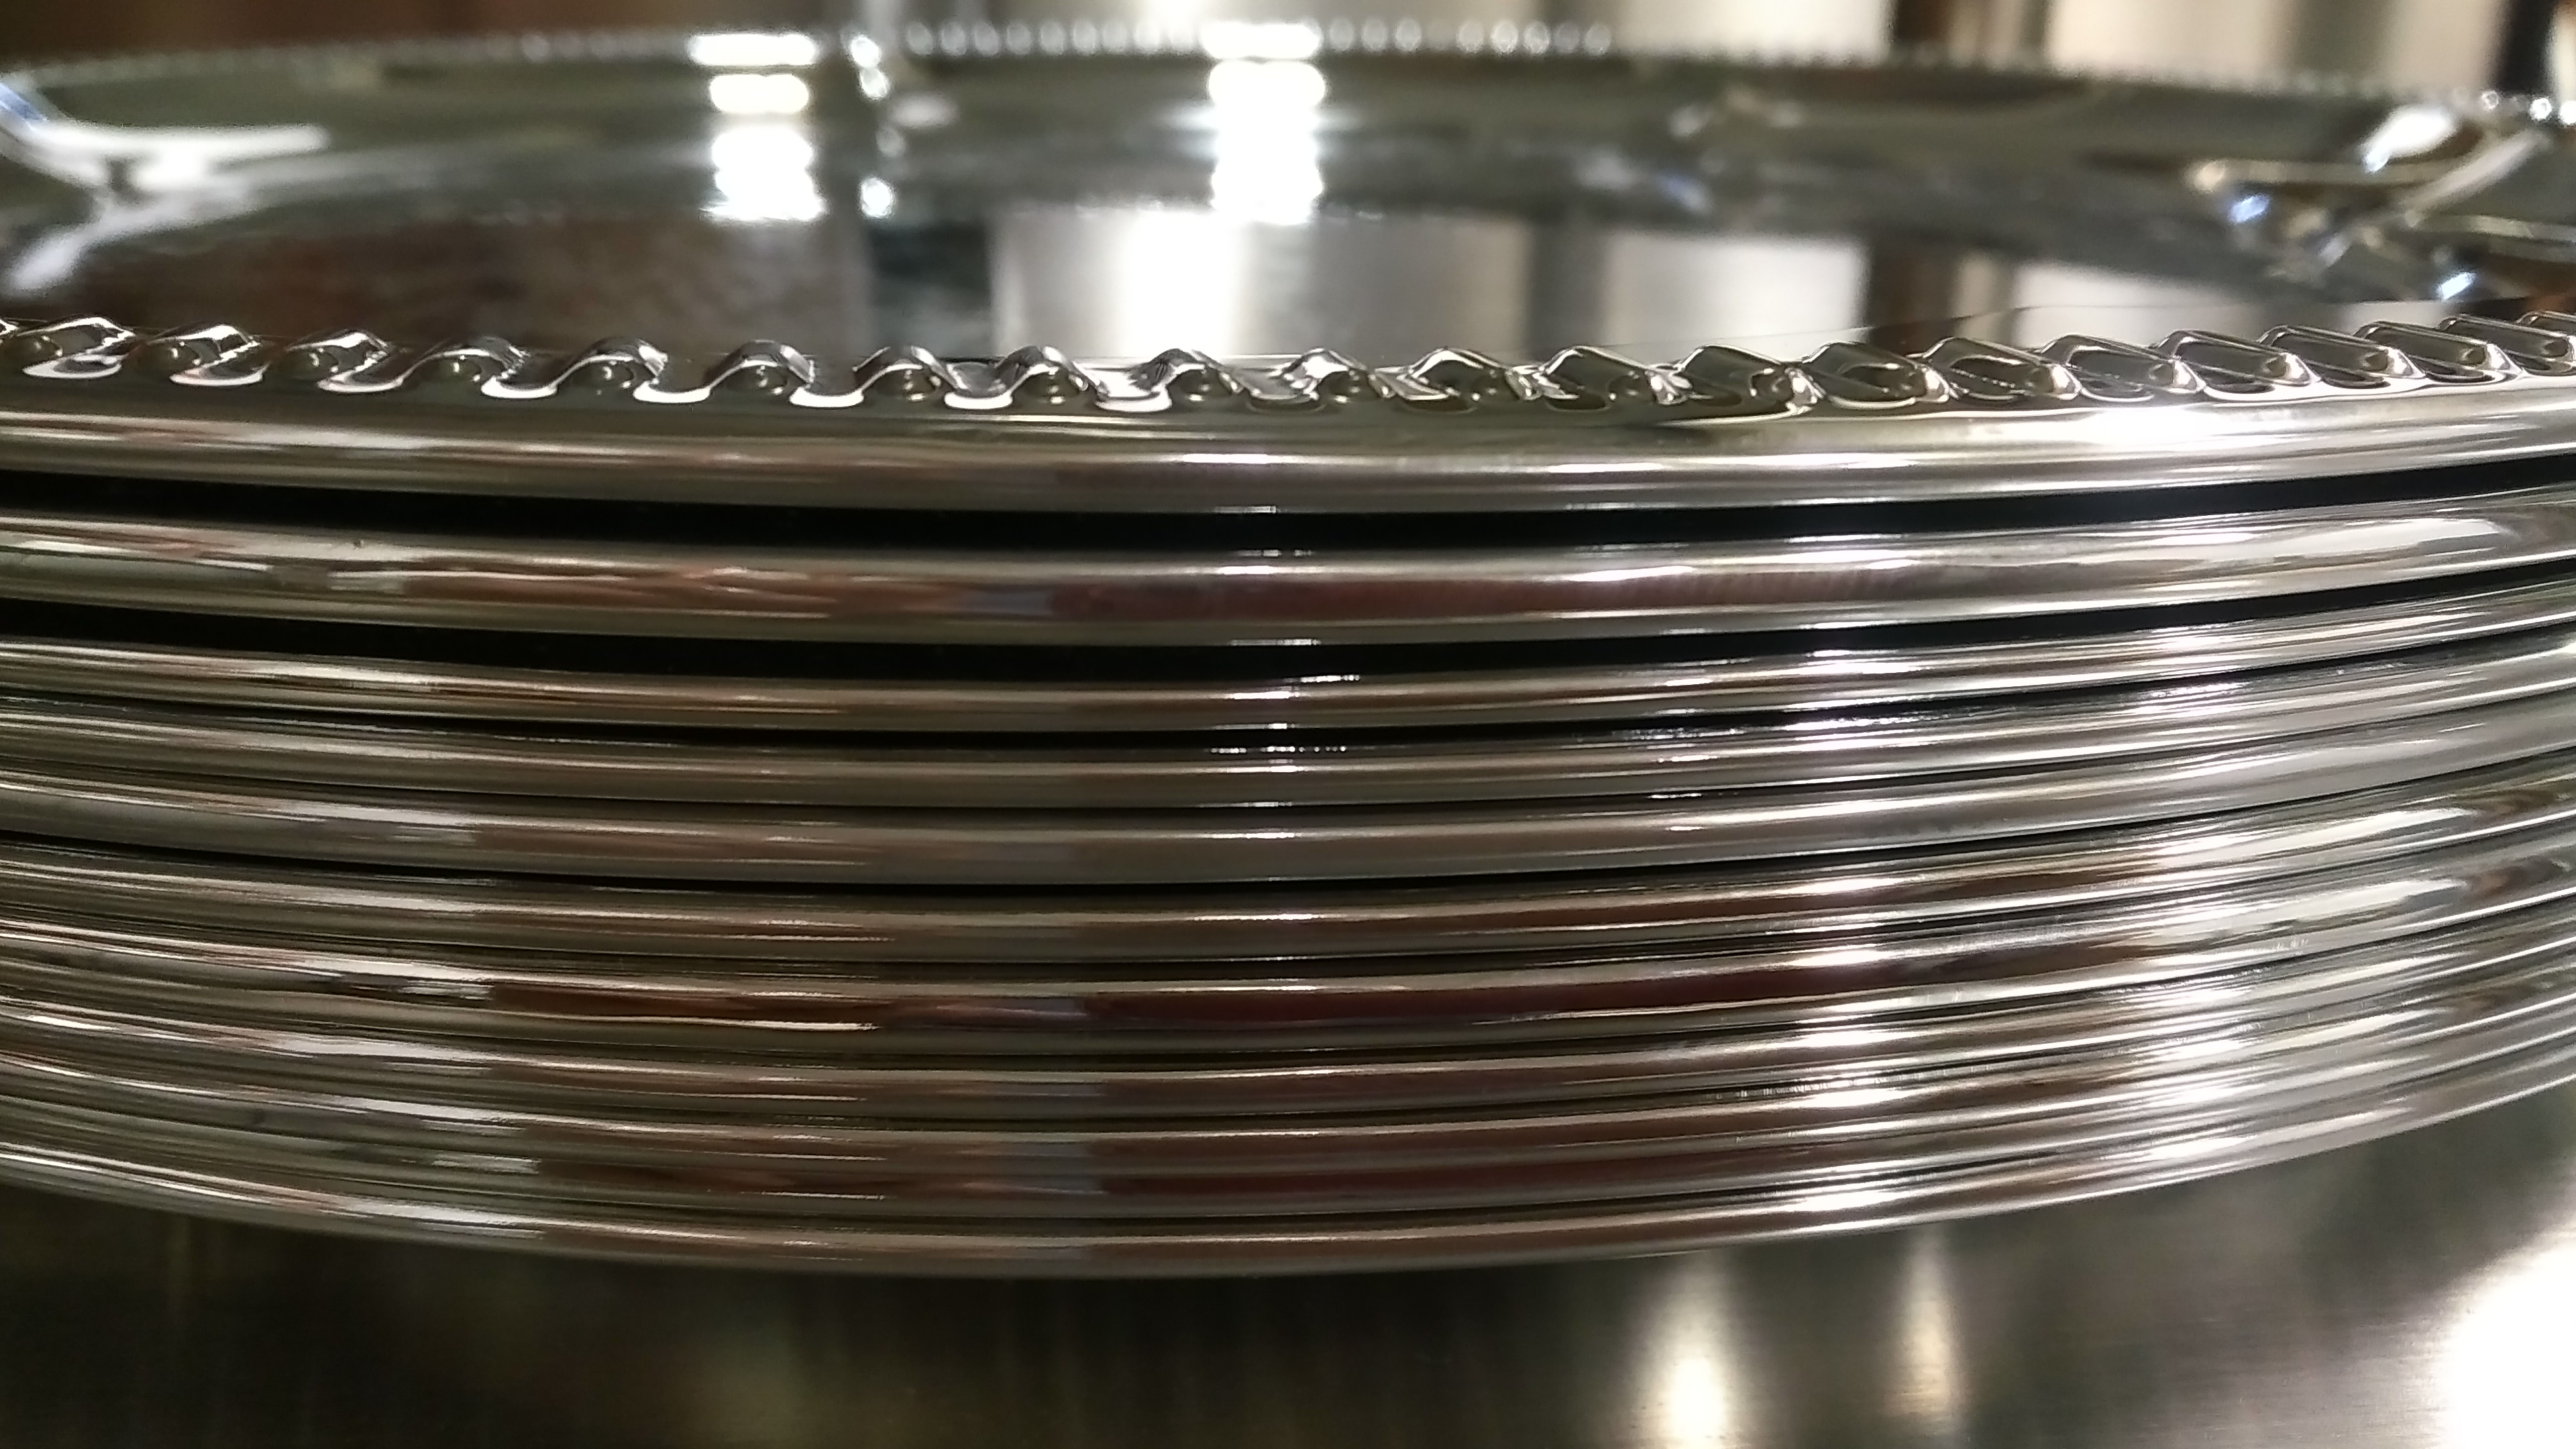 """Lot 8 - 14"""" Iron Serving Tray, Chrome Plated - Lot of 11"""